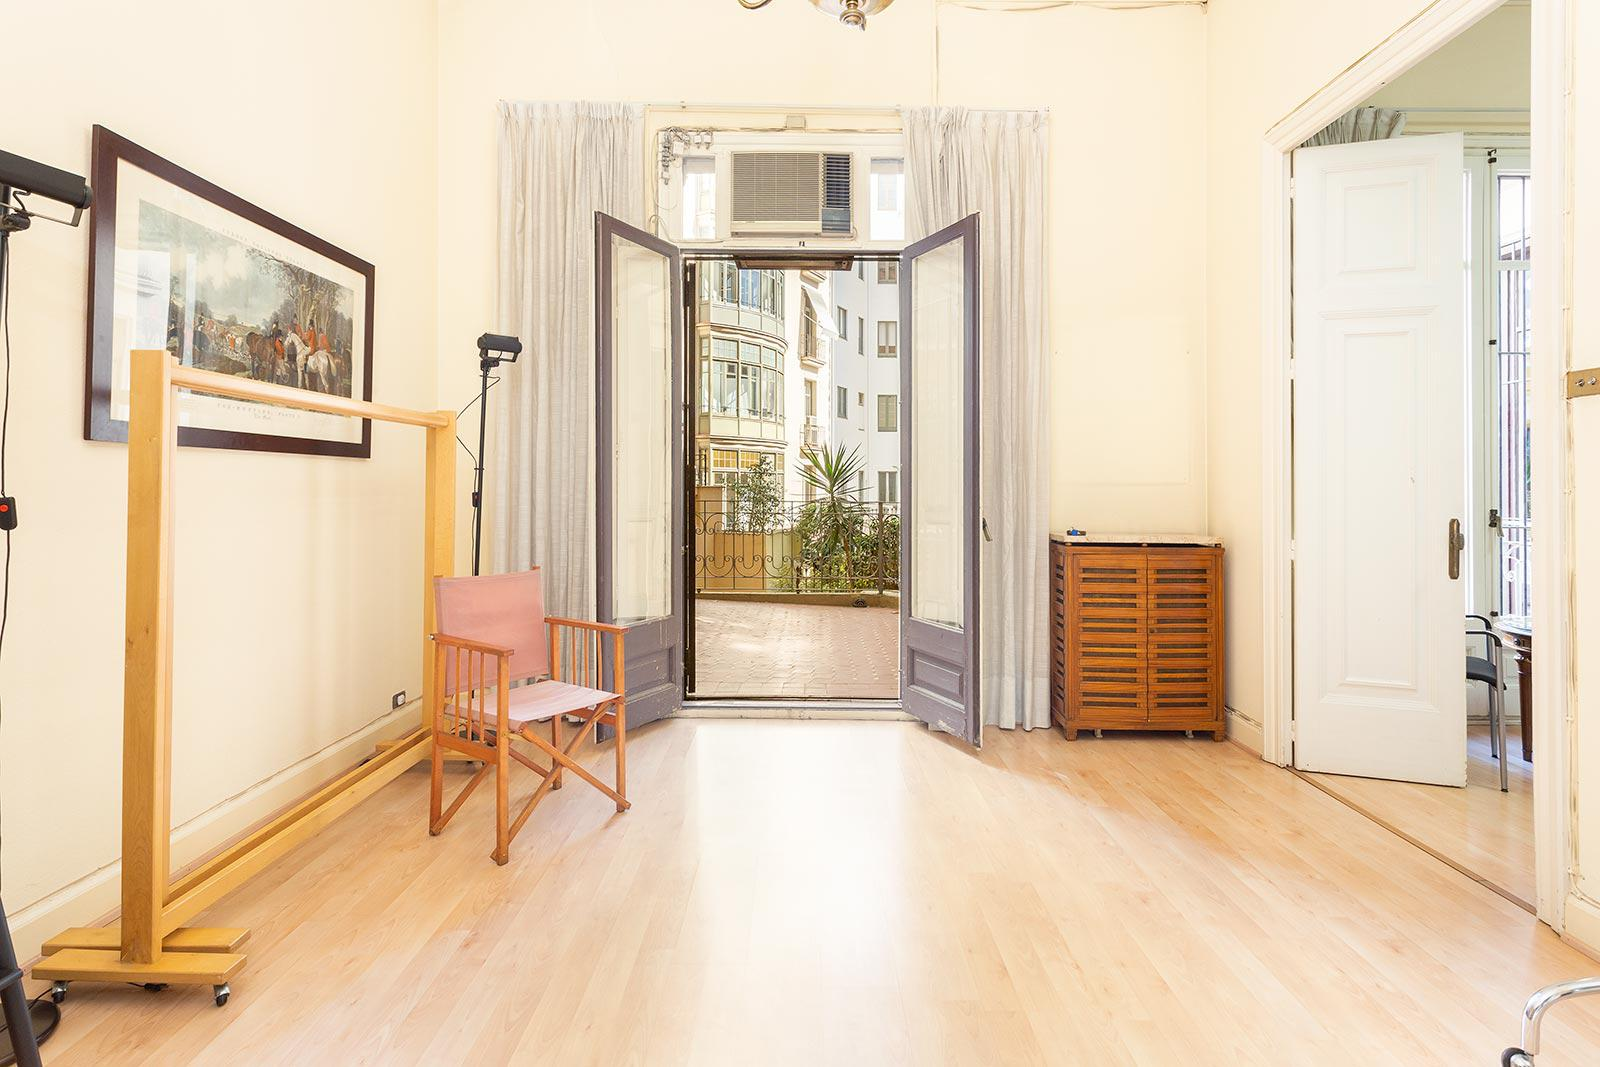 214993 Apartment for sale in Eixample, Dreta Eixample 18